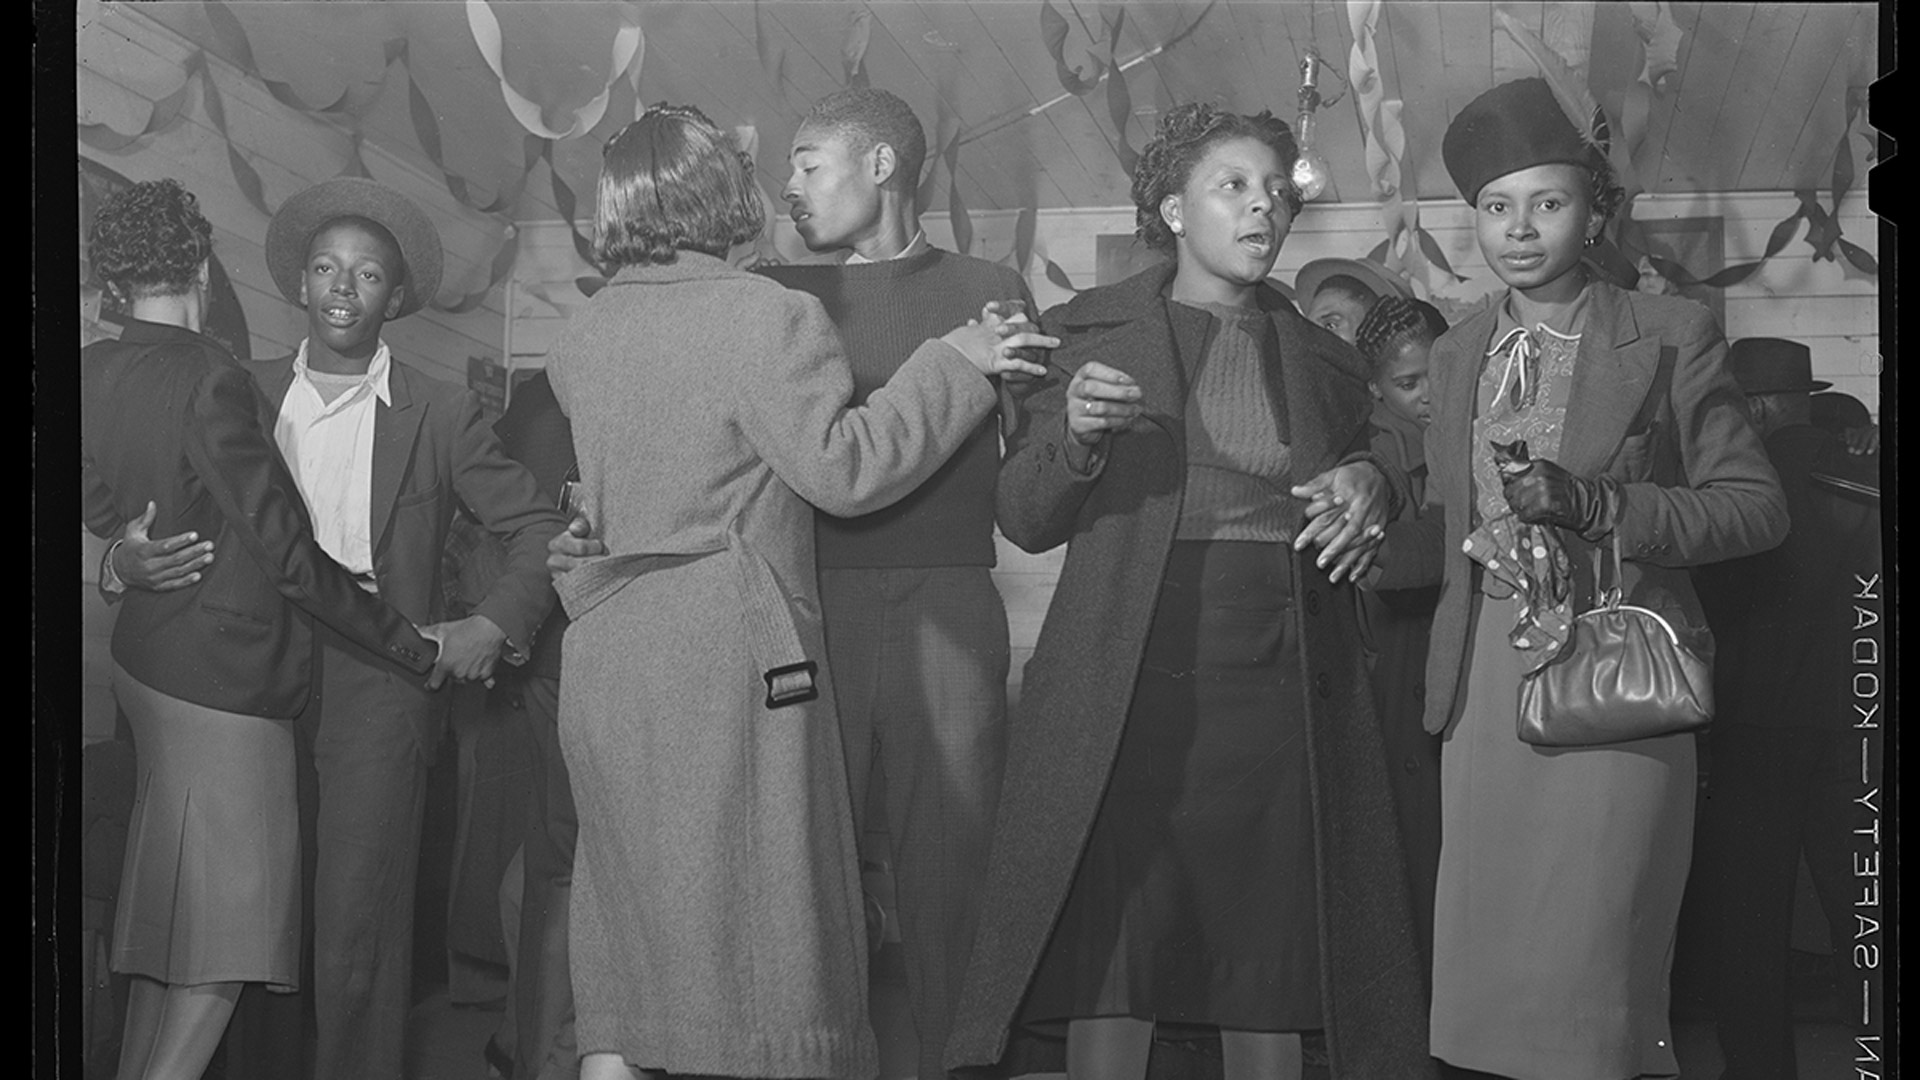 African American men and women dancing together.